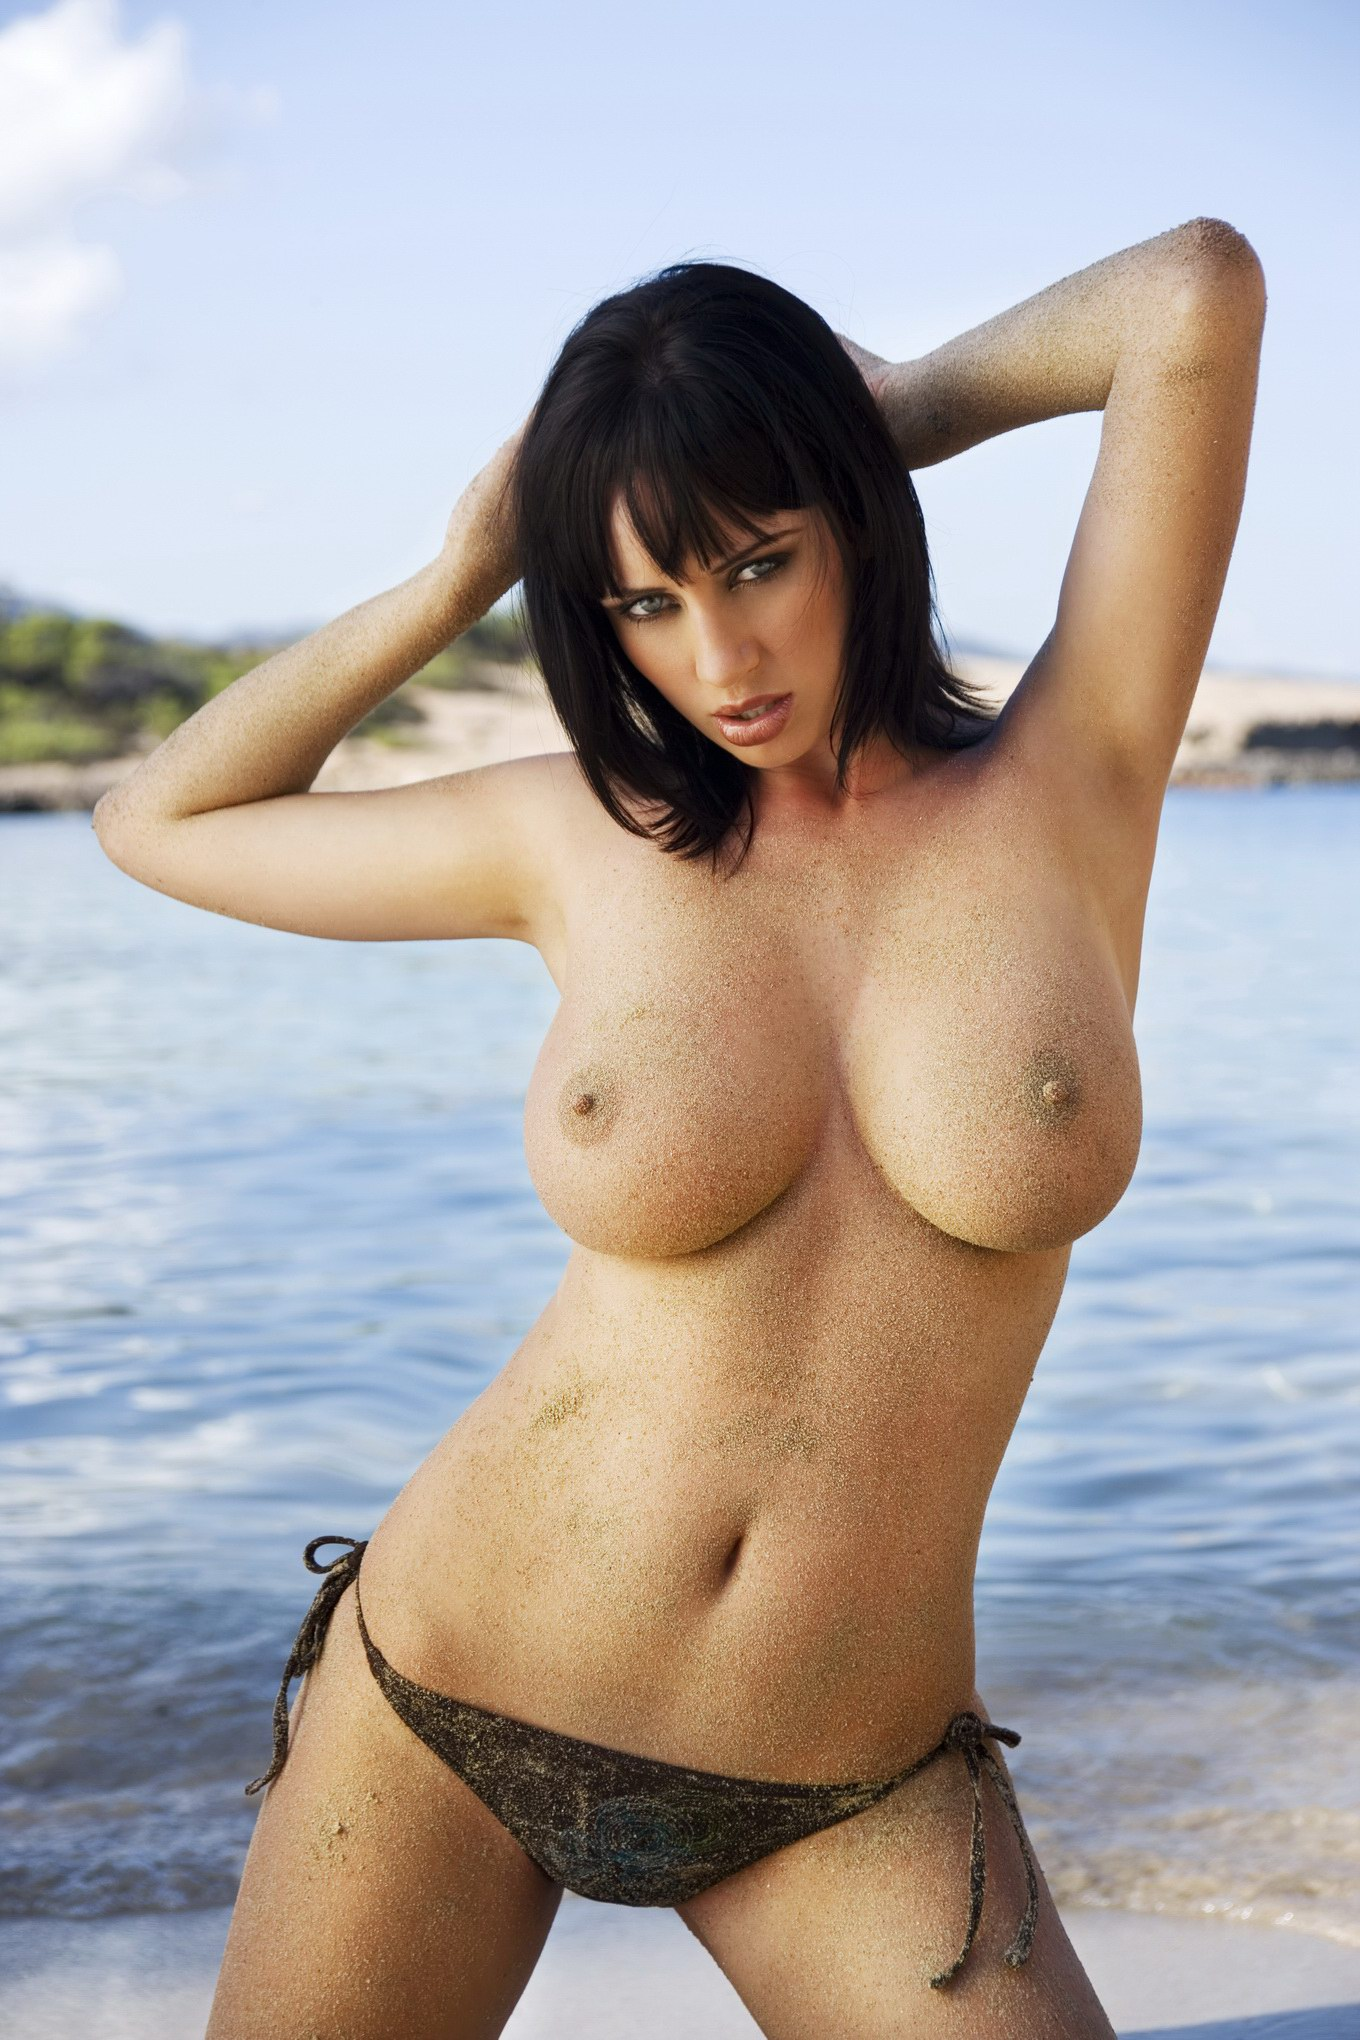 And the Sophie howard boobs